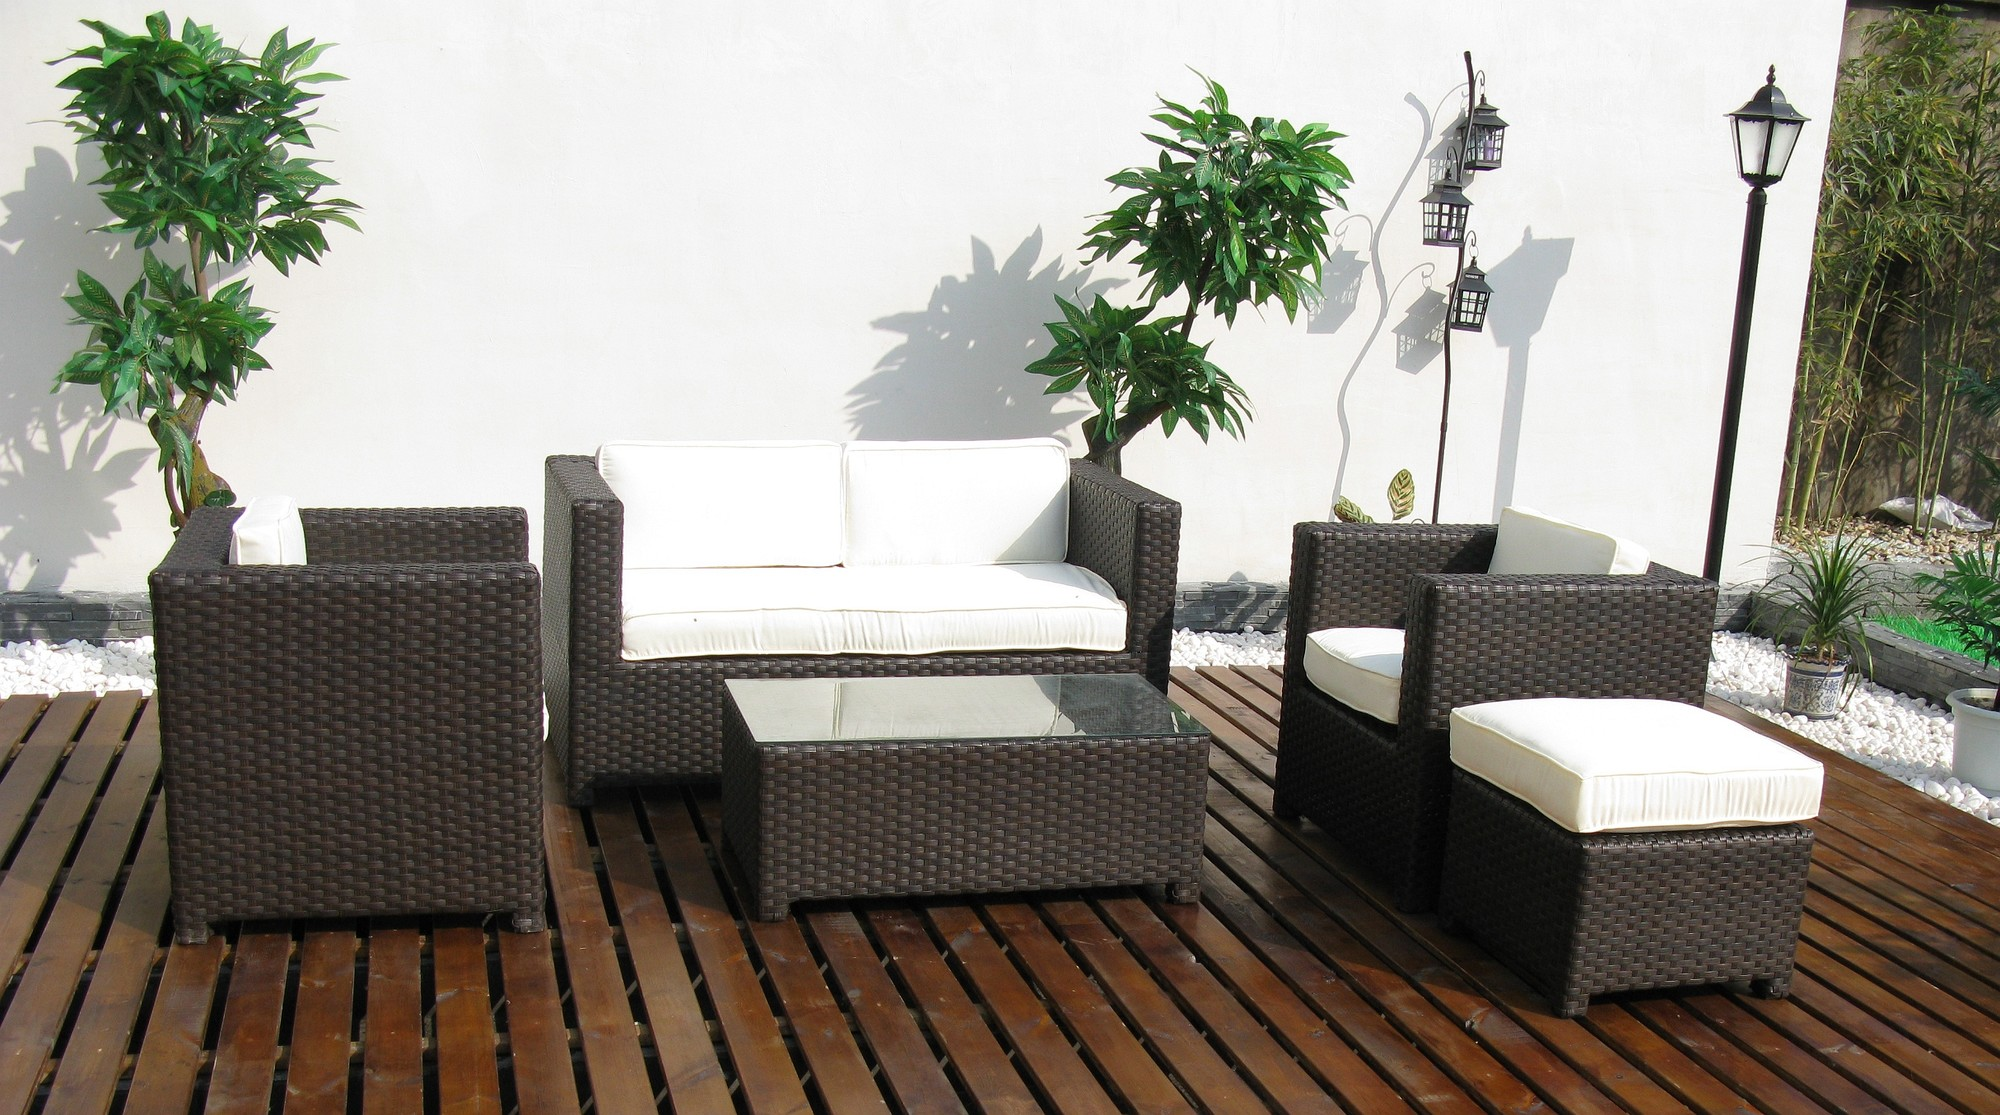 rattan half moon sofa set armen living dallas bay 5 piece outdoor temple webster sku hofl1020 is also sometimes listed under the following manufacturer numbers hs010